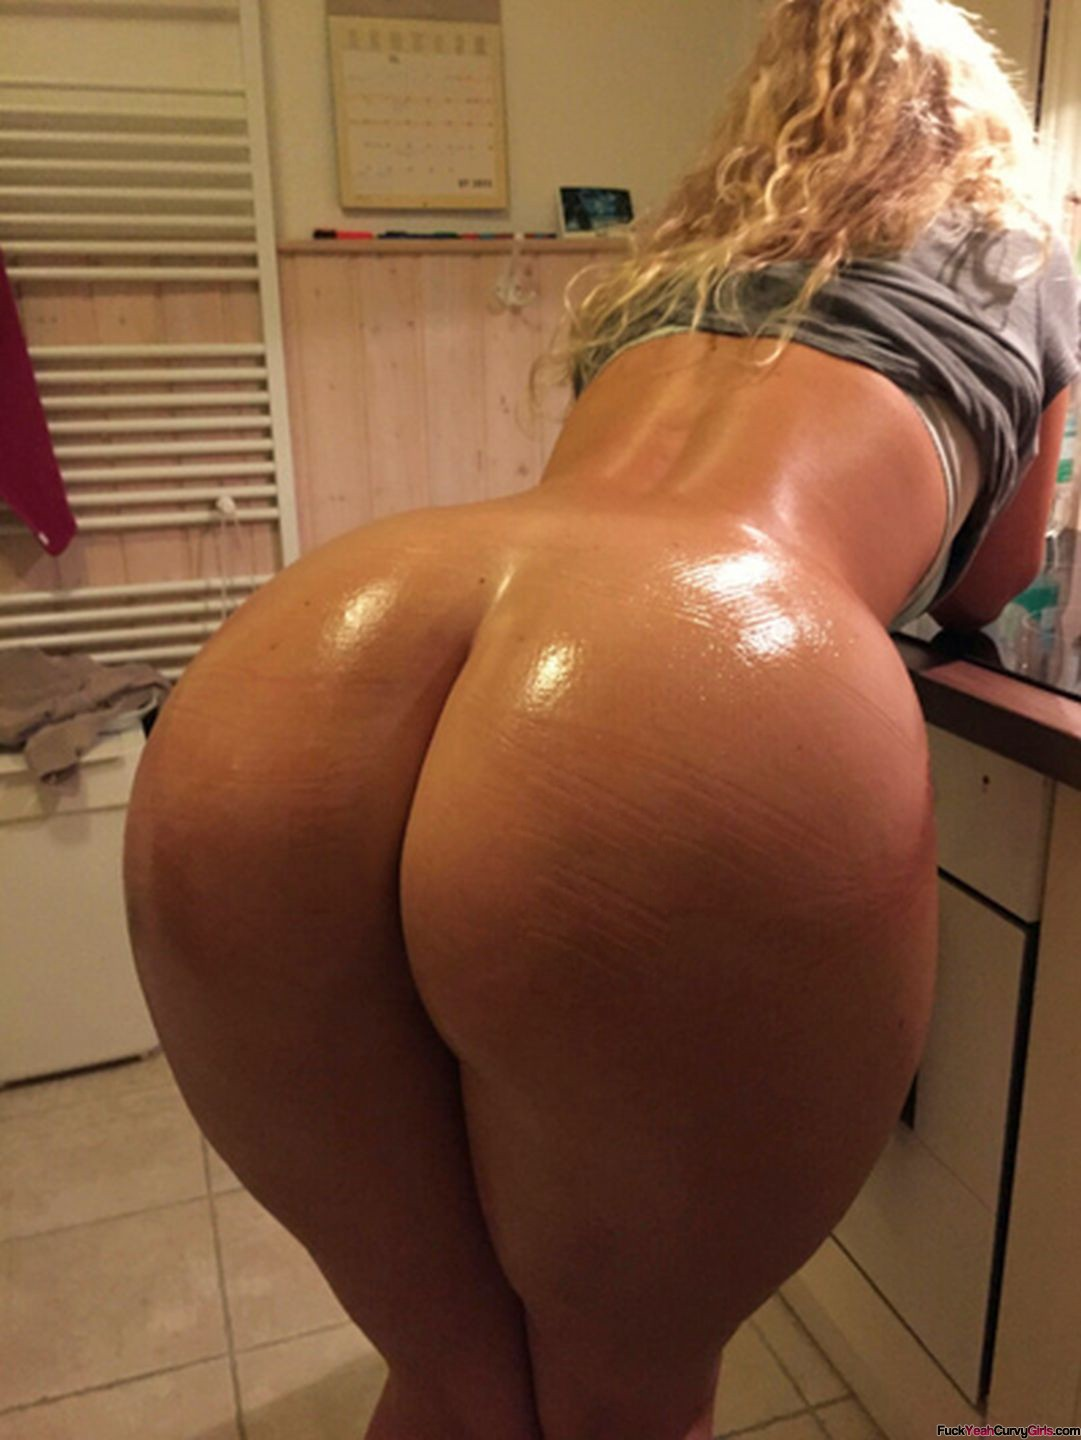 slut wife ass oussy